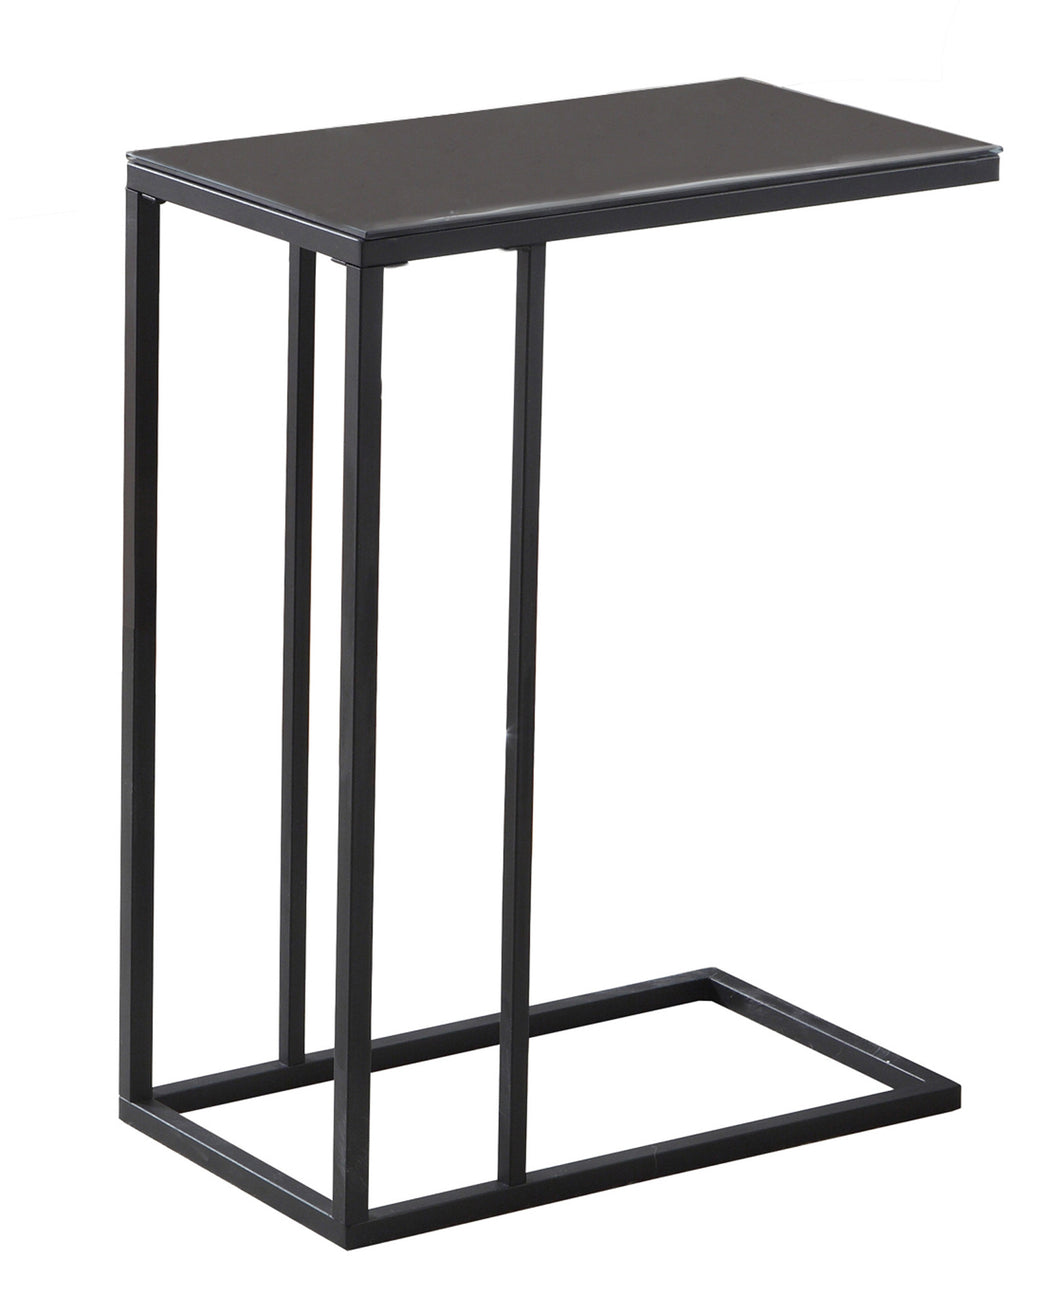 Snack Table - Black Metal / Black Tempered Glass